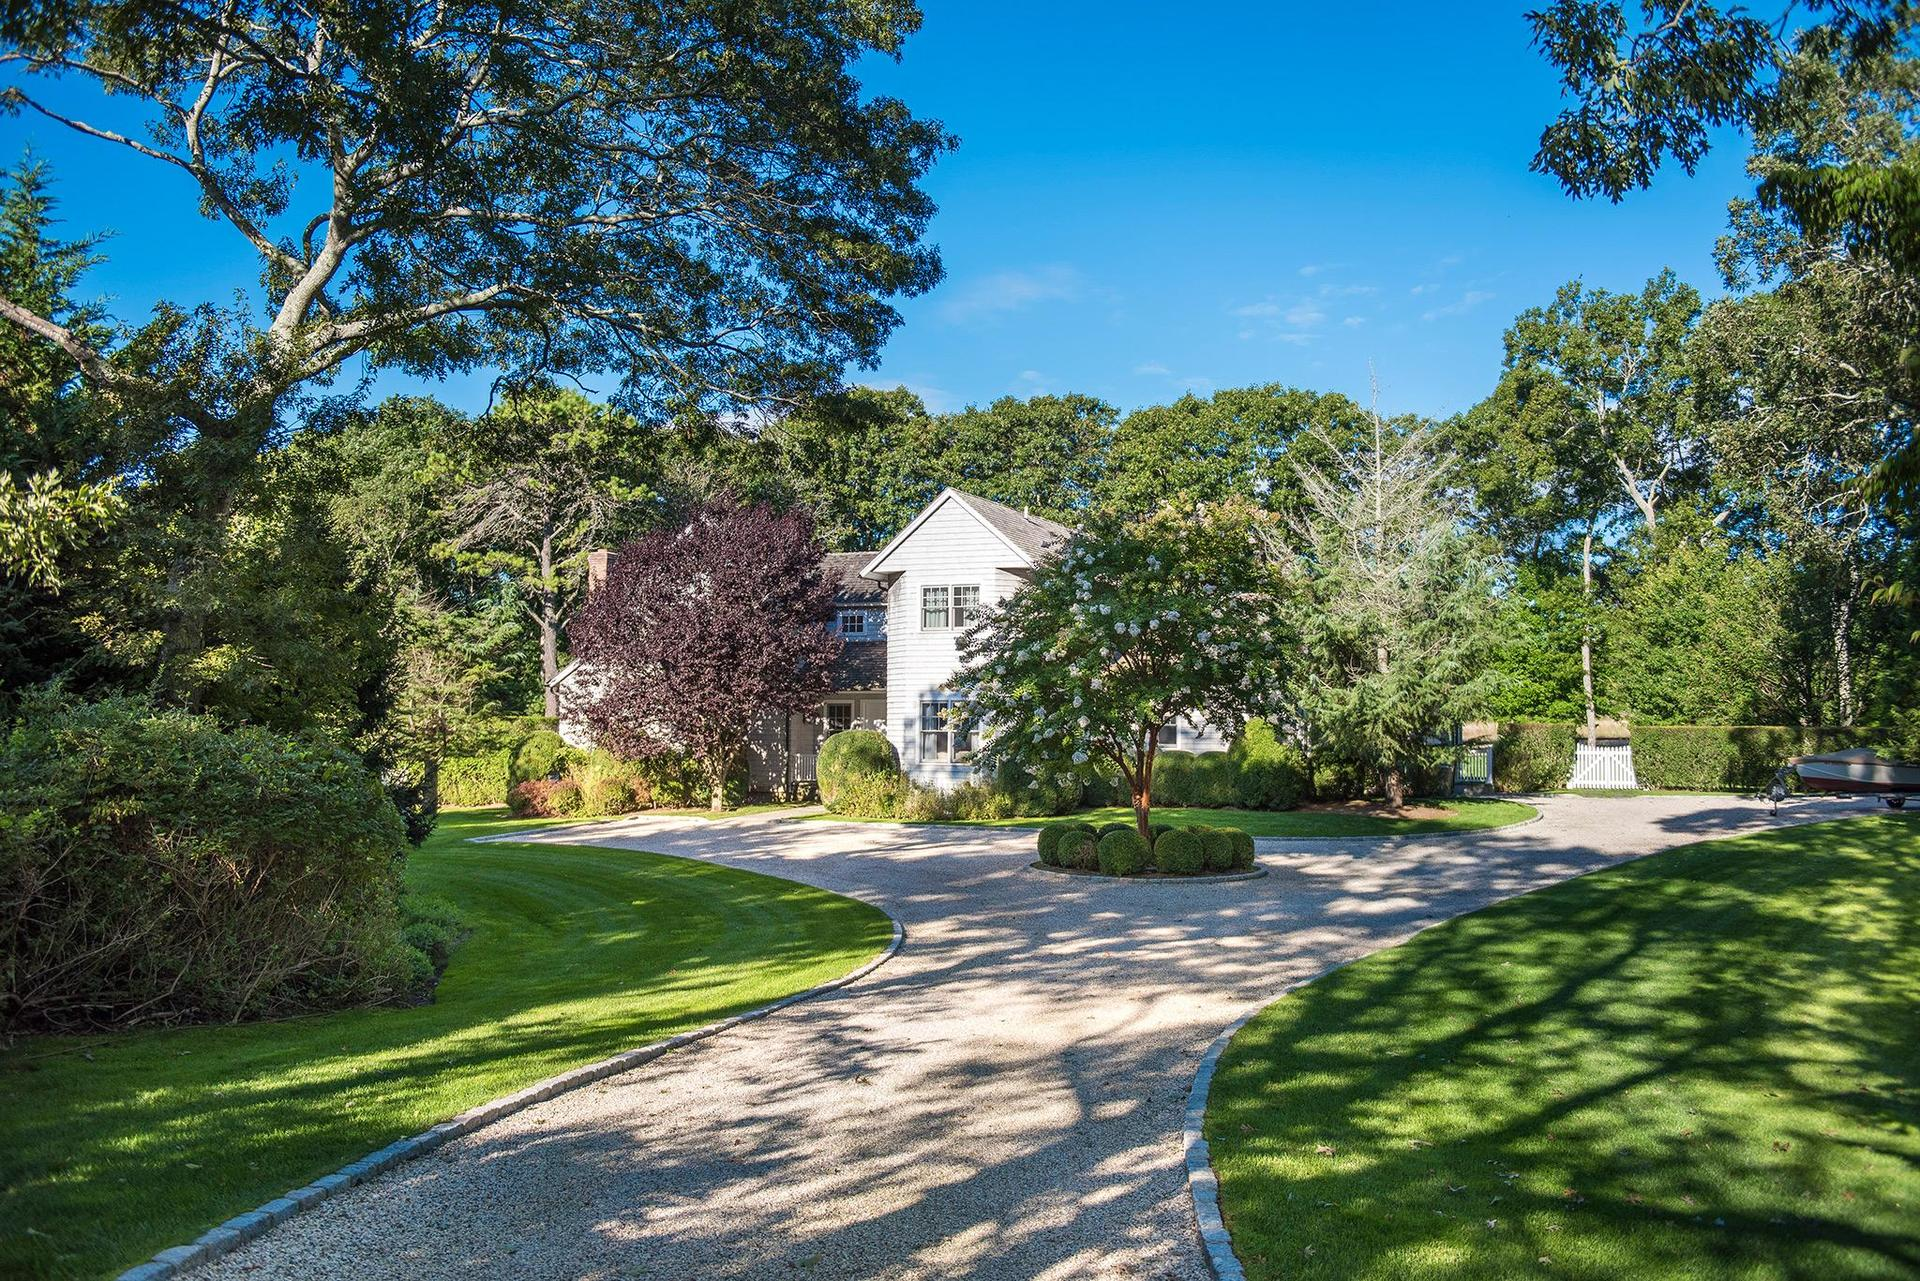 Single Family Home for Sale at House Beautiful 14 Clover Leaf Lane, East Hampton, New York